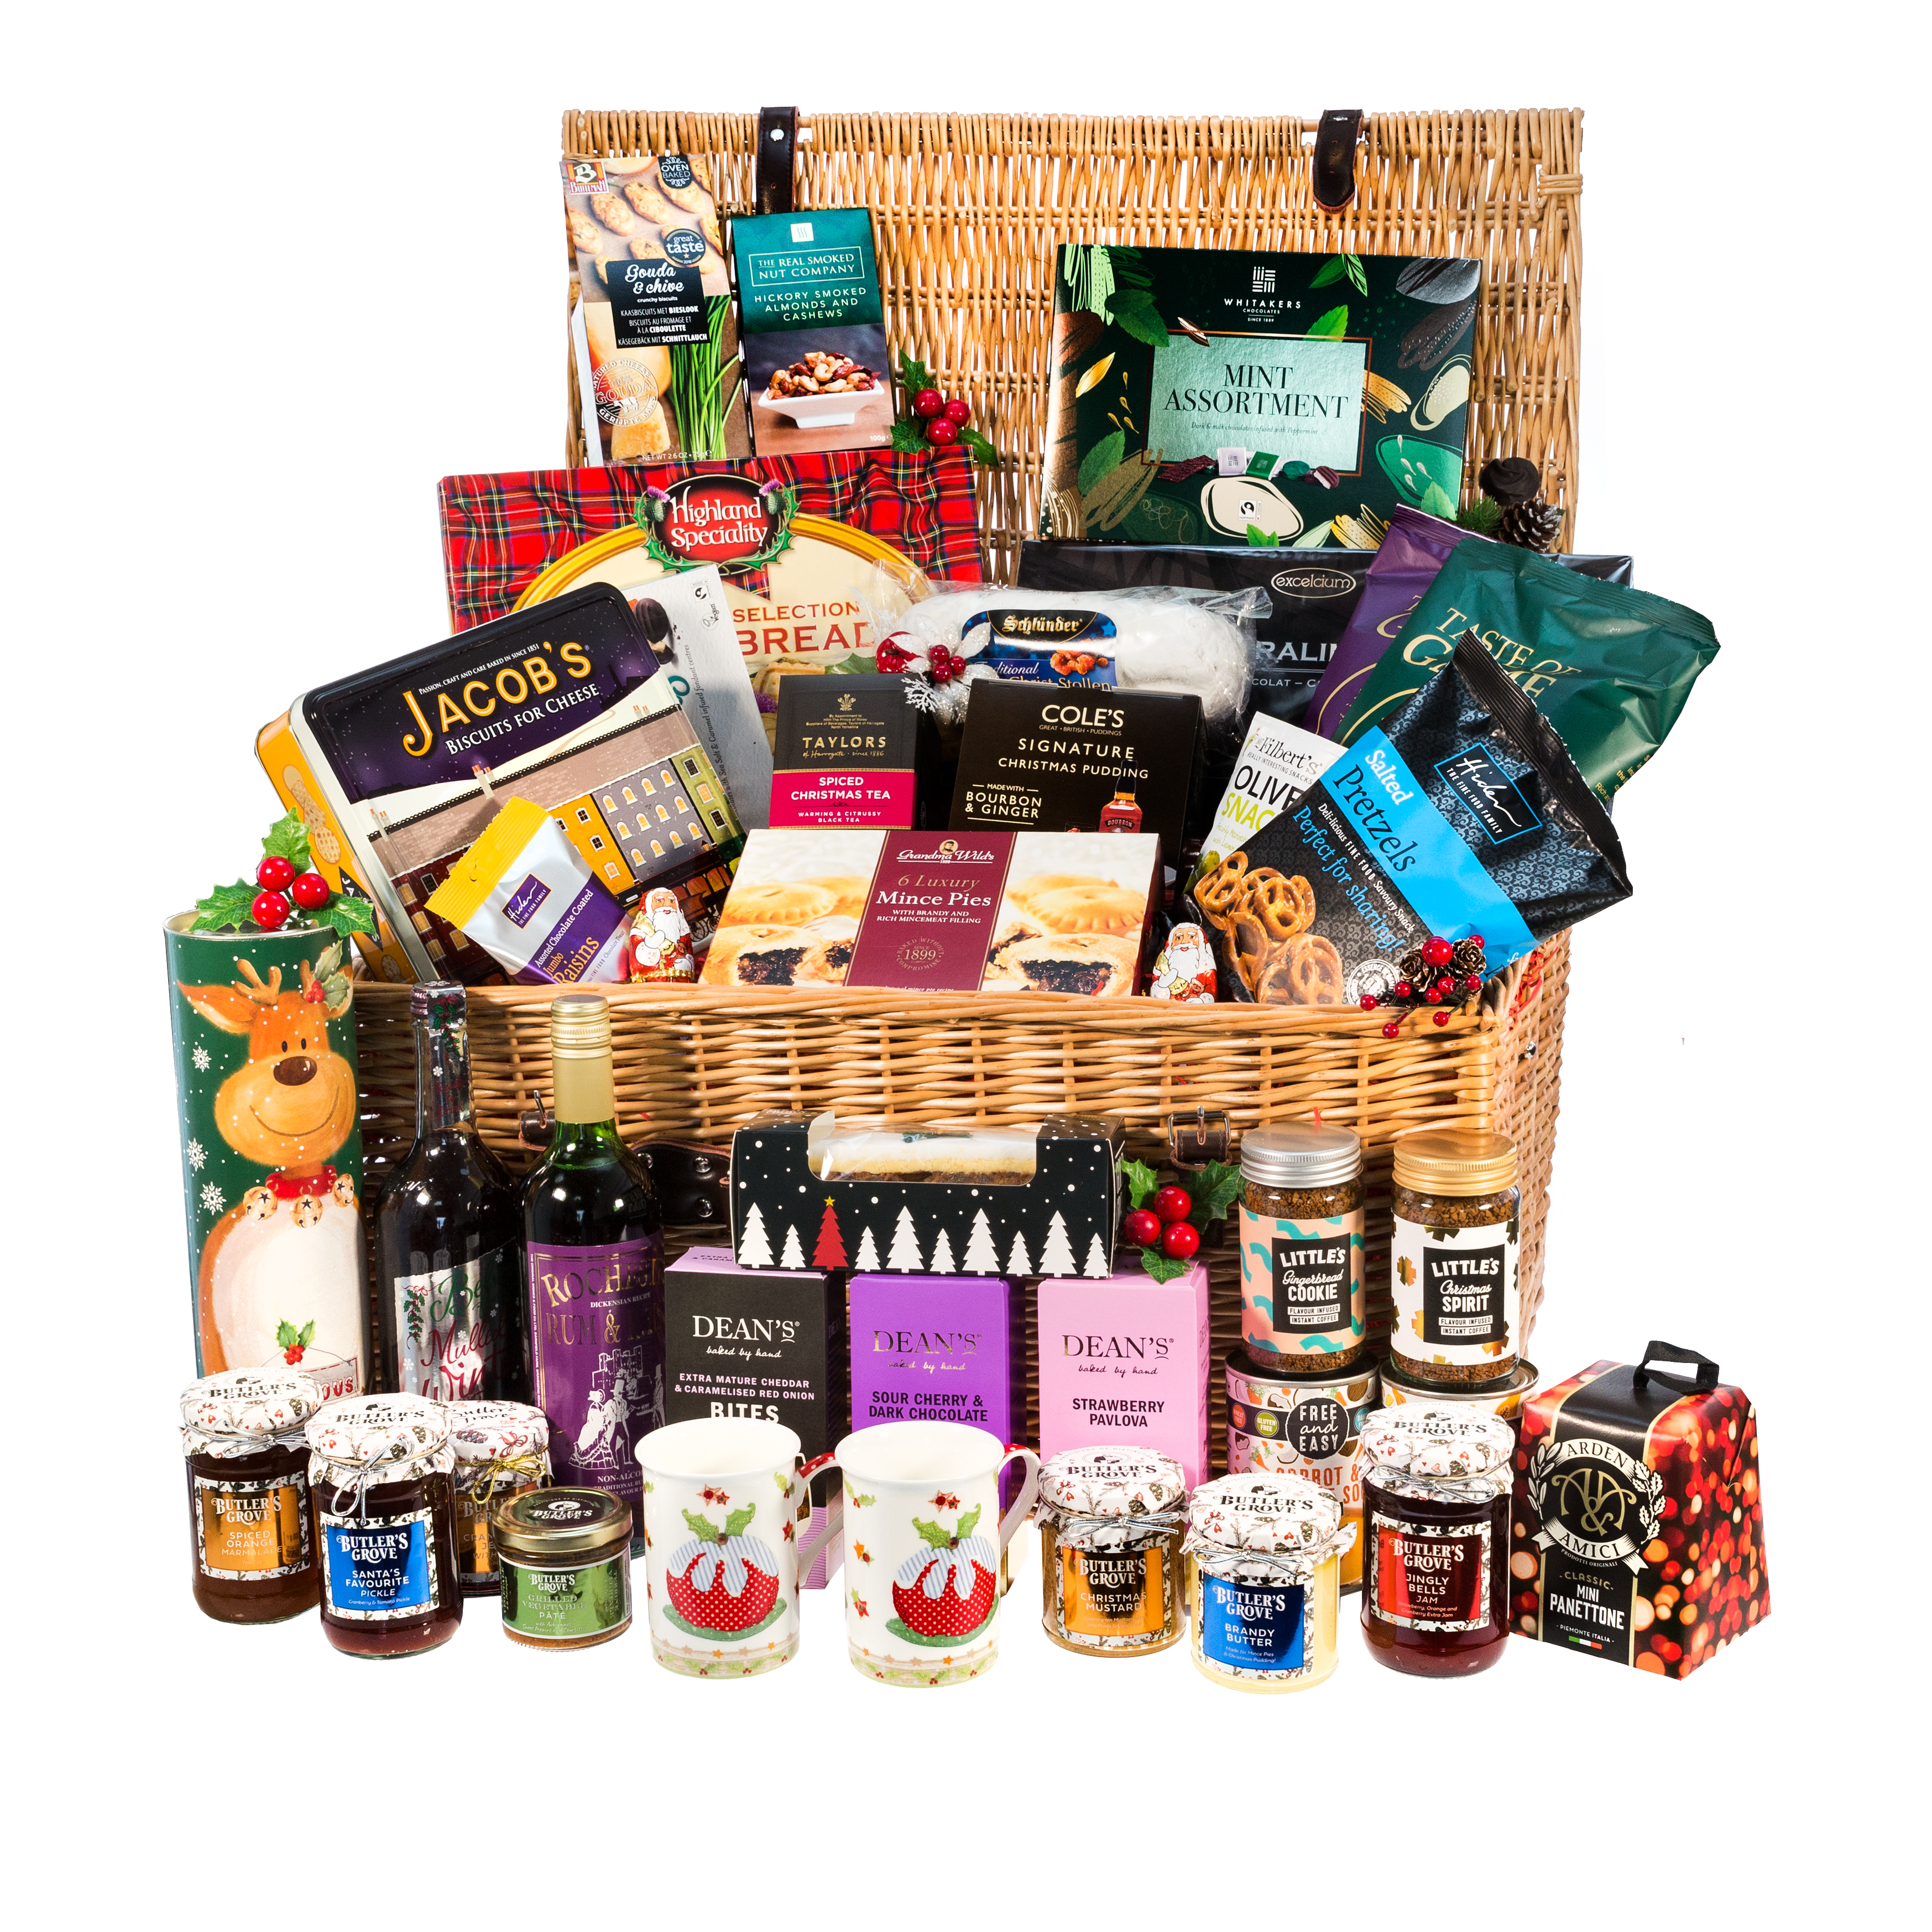 What Shall We Get For Mum Dad Christmas Gift Hamper 176 95 Uppercrust Pies